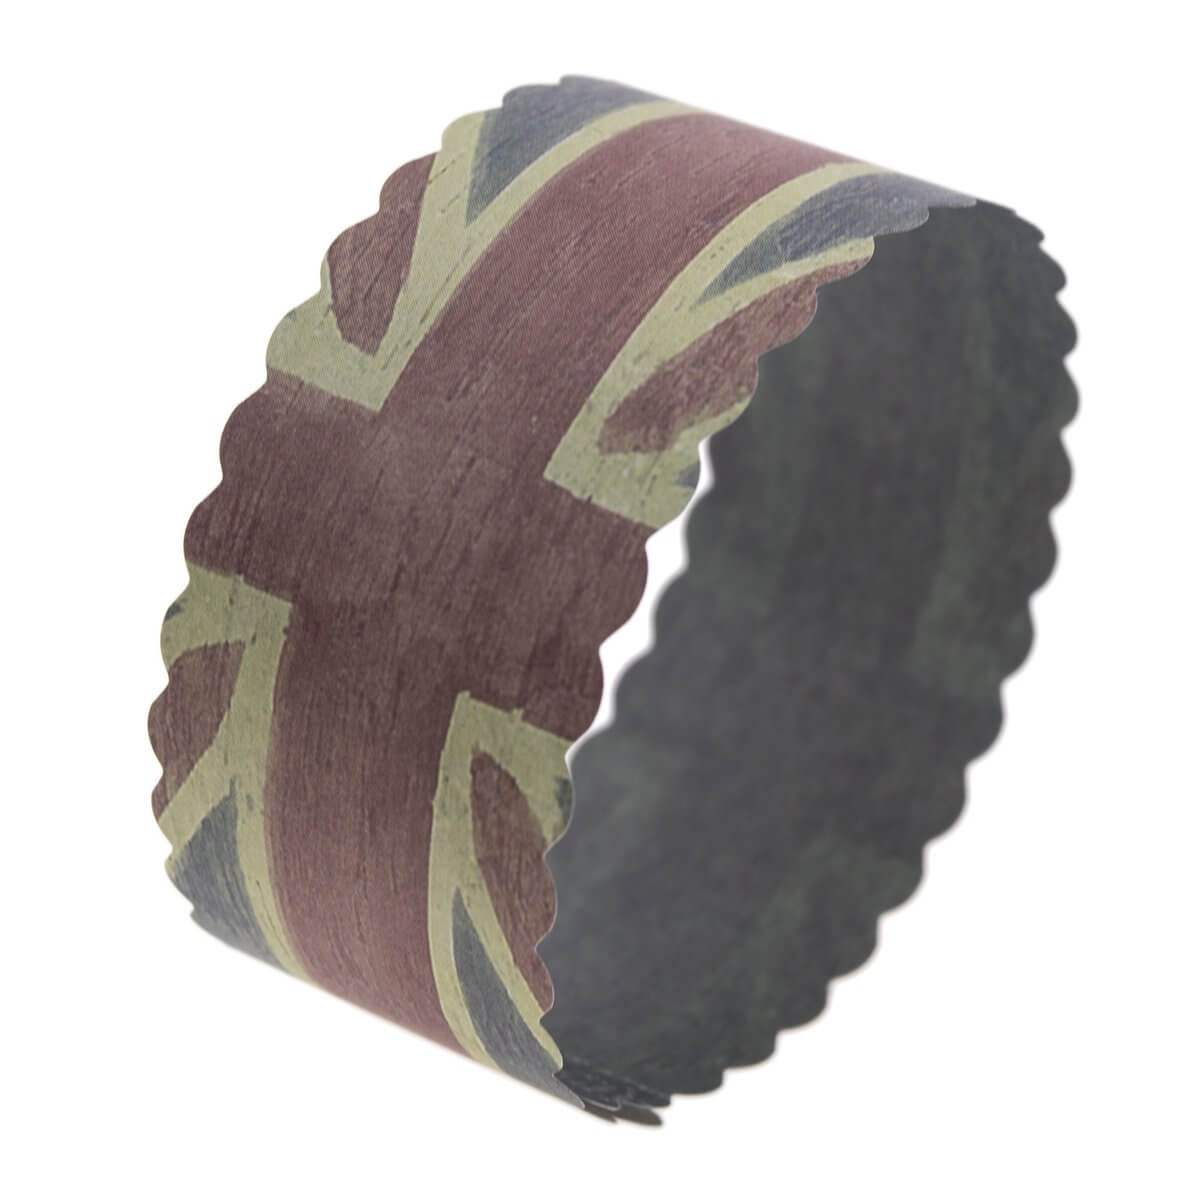 Union Jack Distressed Effect Paper Chain Kit